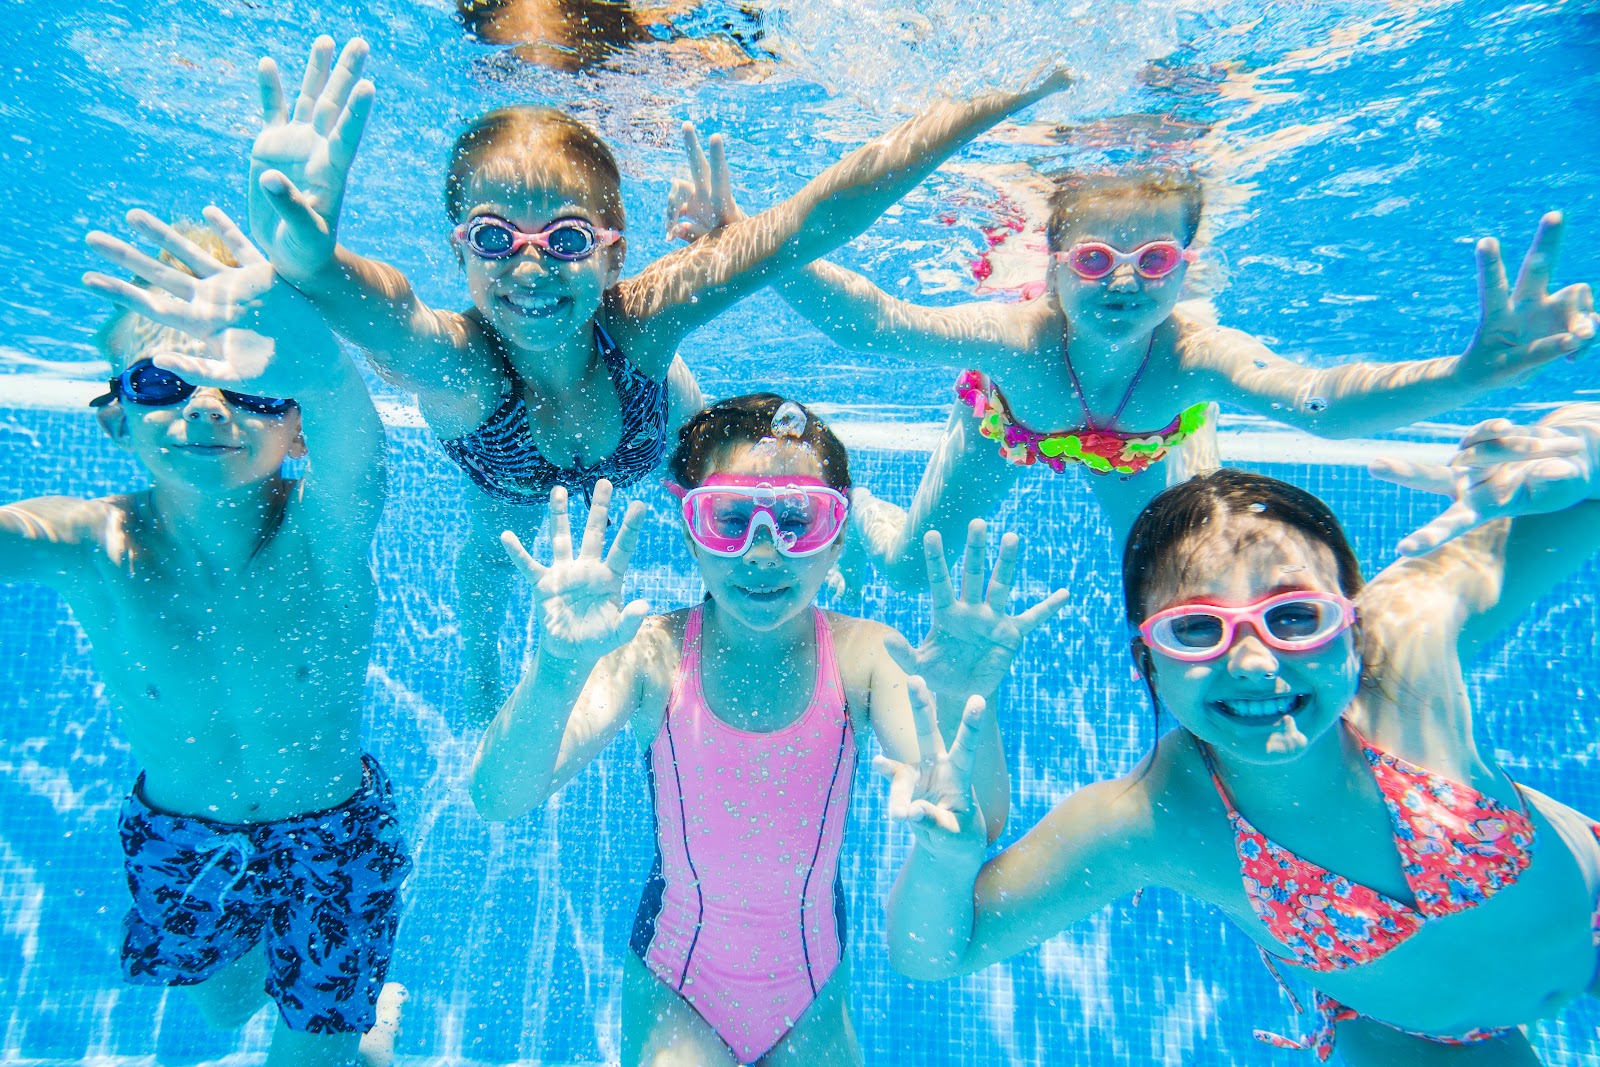 5 kids underwater in a swimming pool wearing goggles and smiling